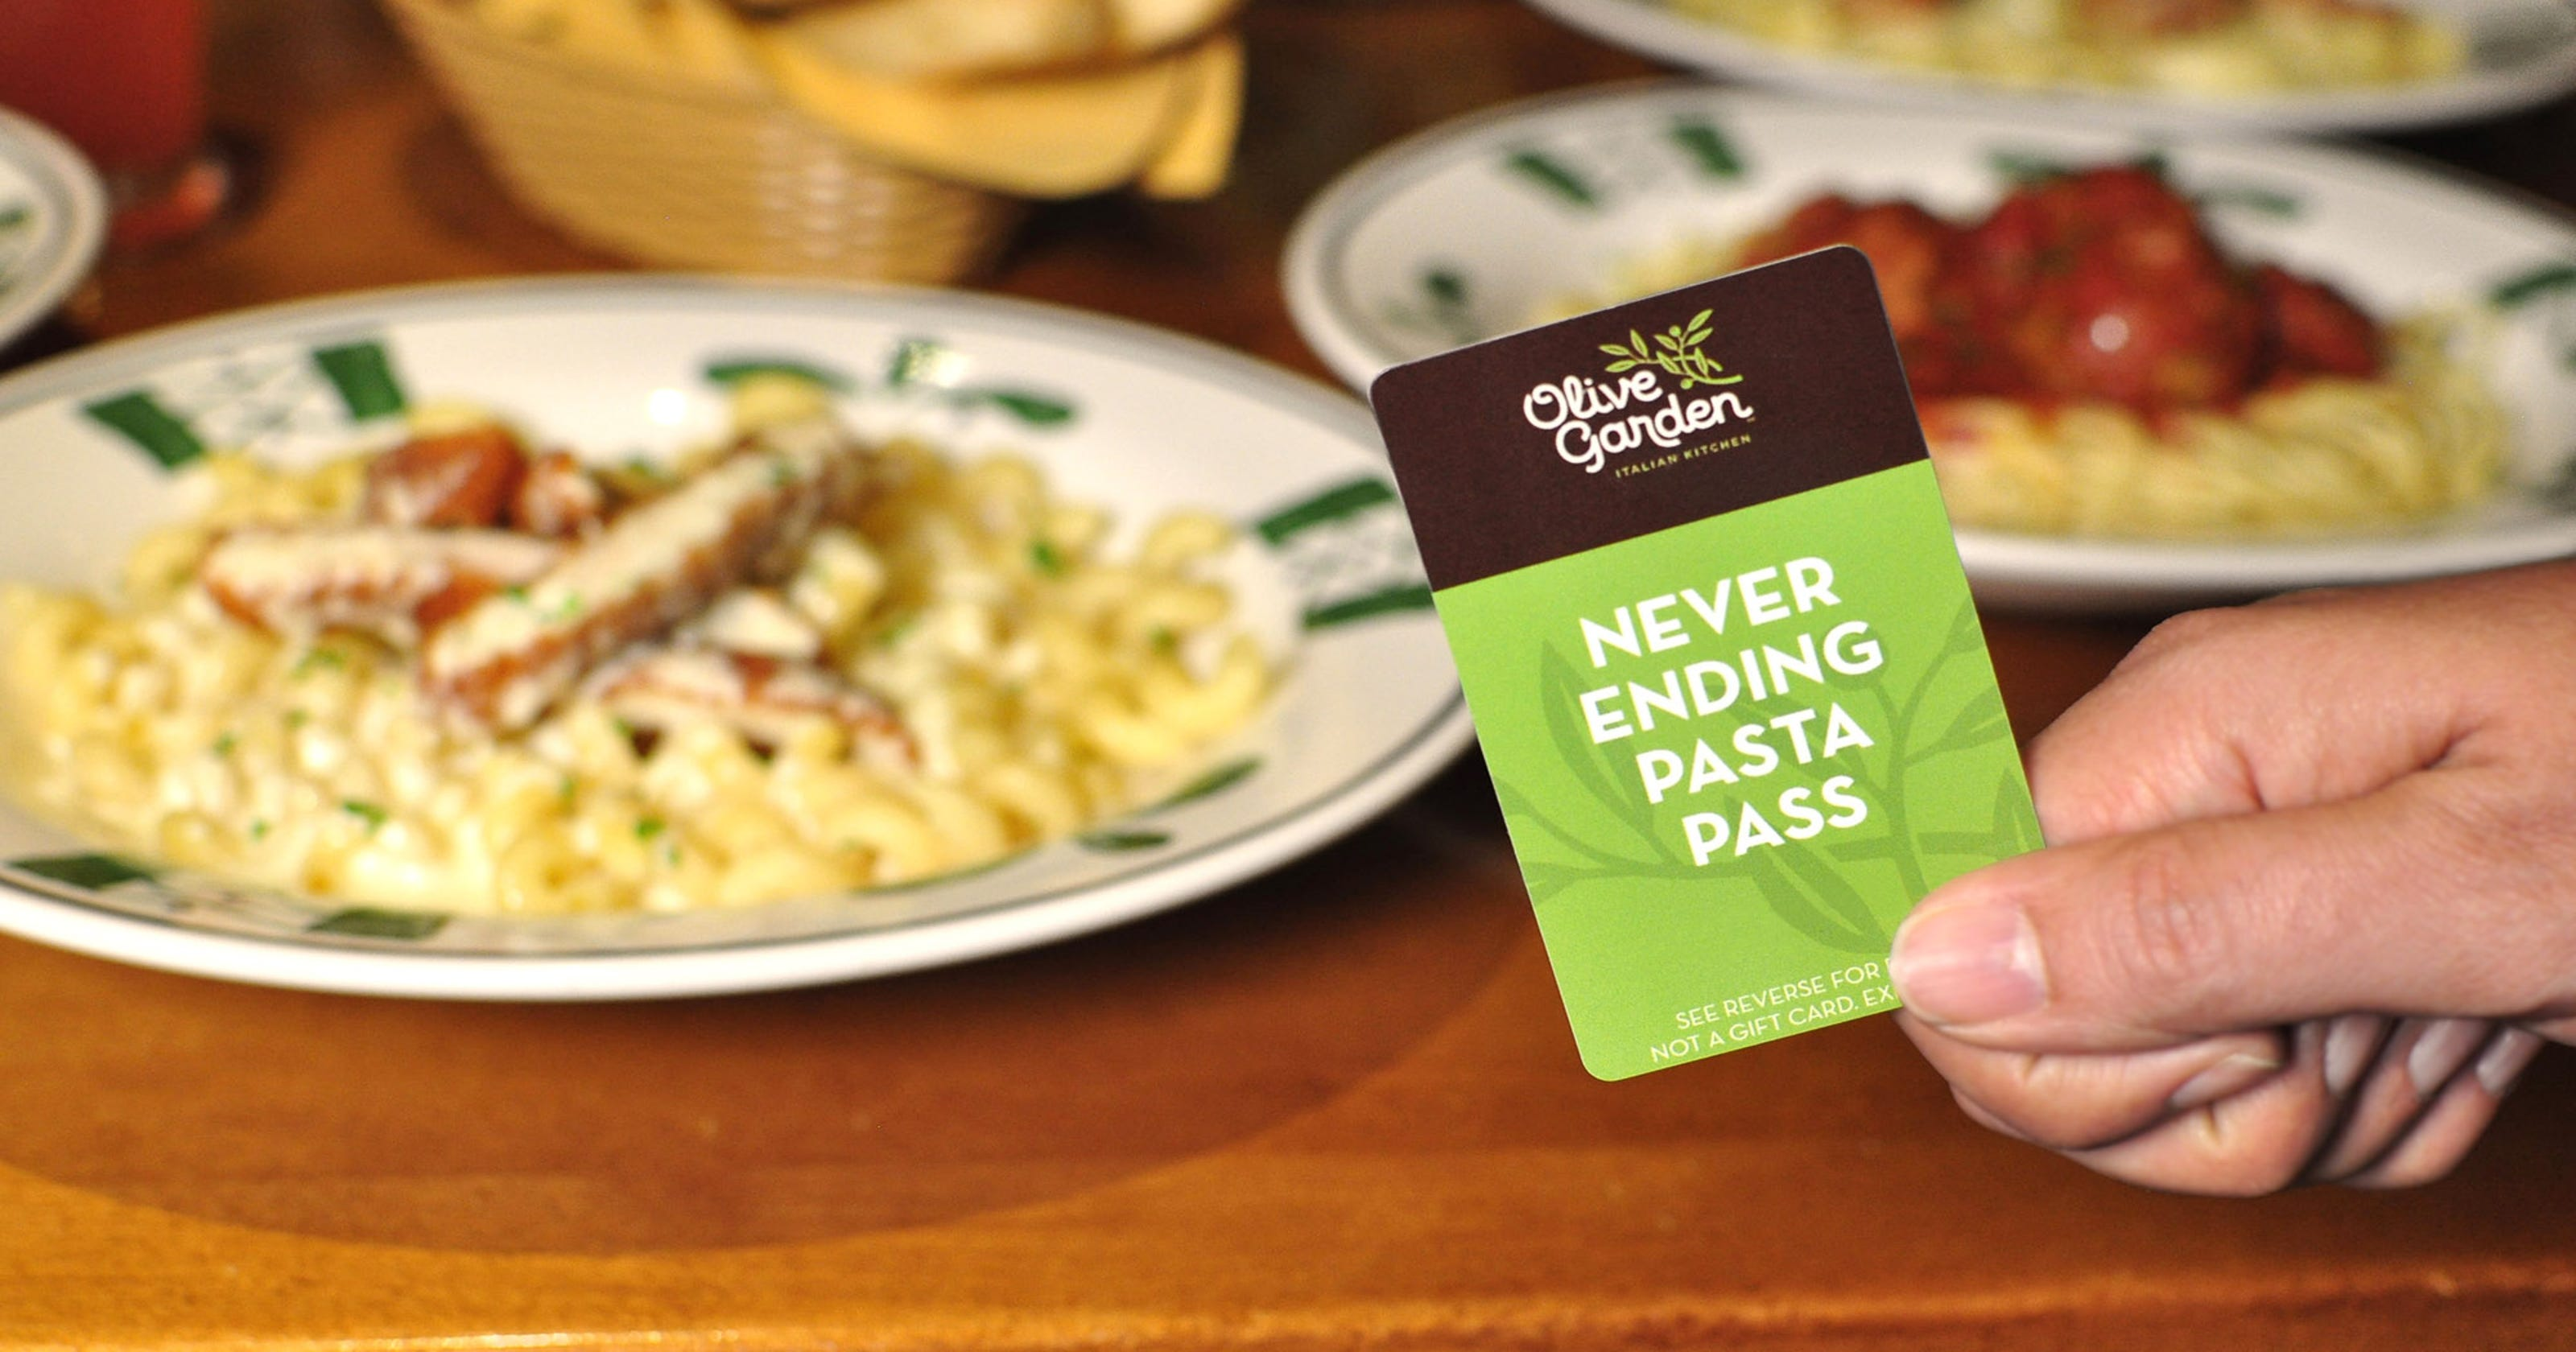 39 random acts of pasta 39 man brings olive garden to homeless for Is olive garden open on thanksgiving